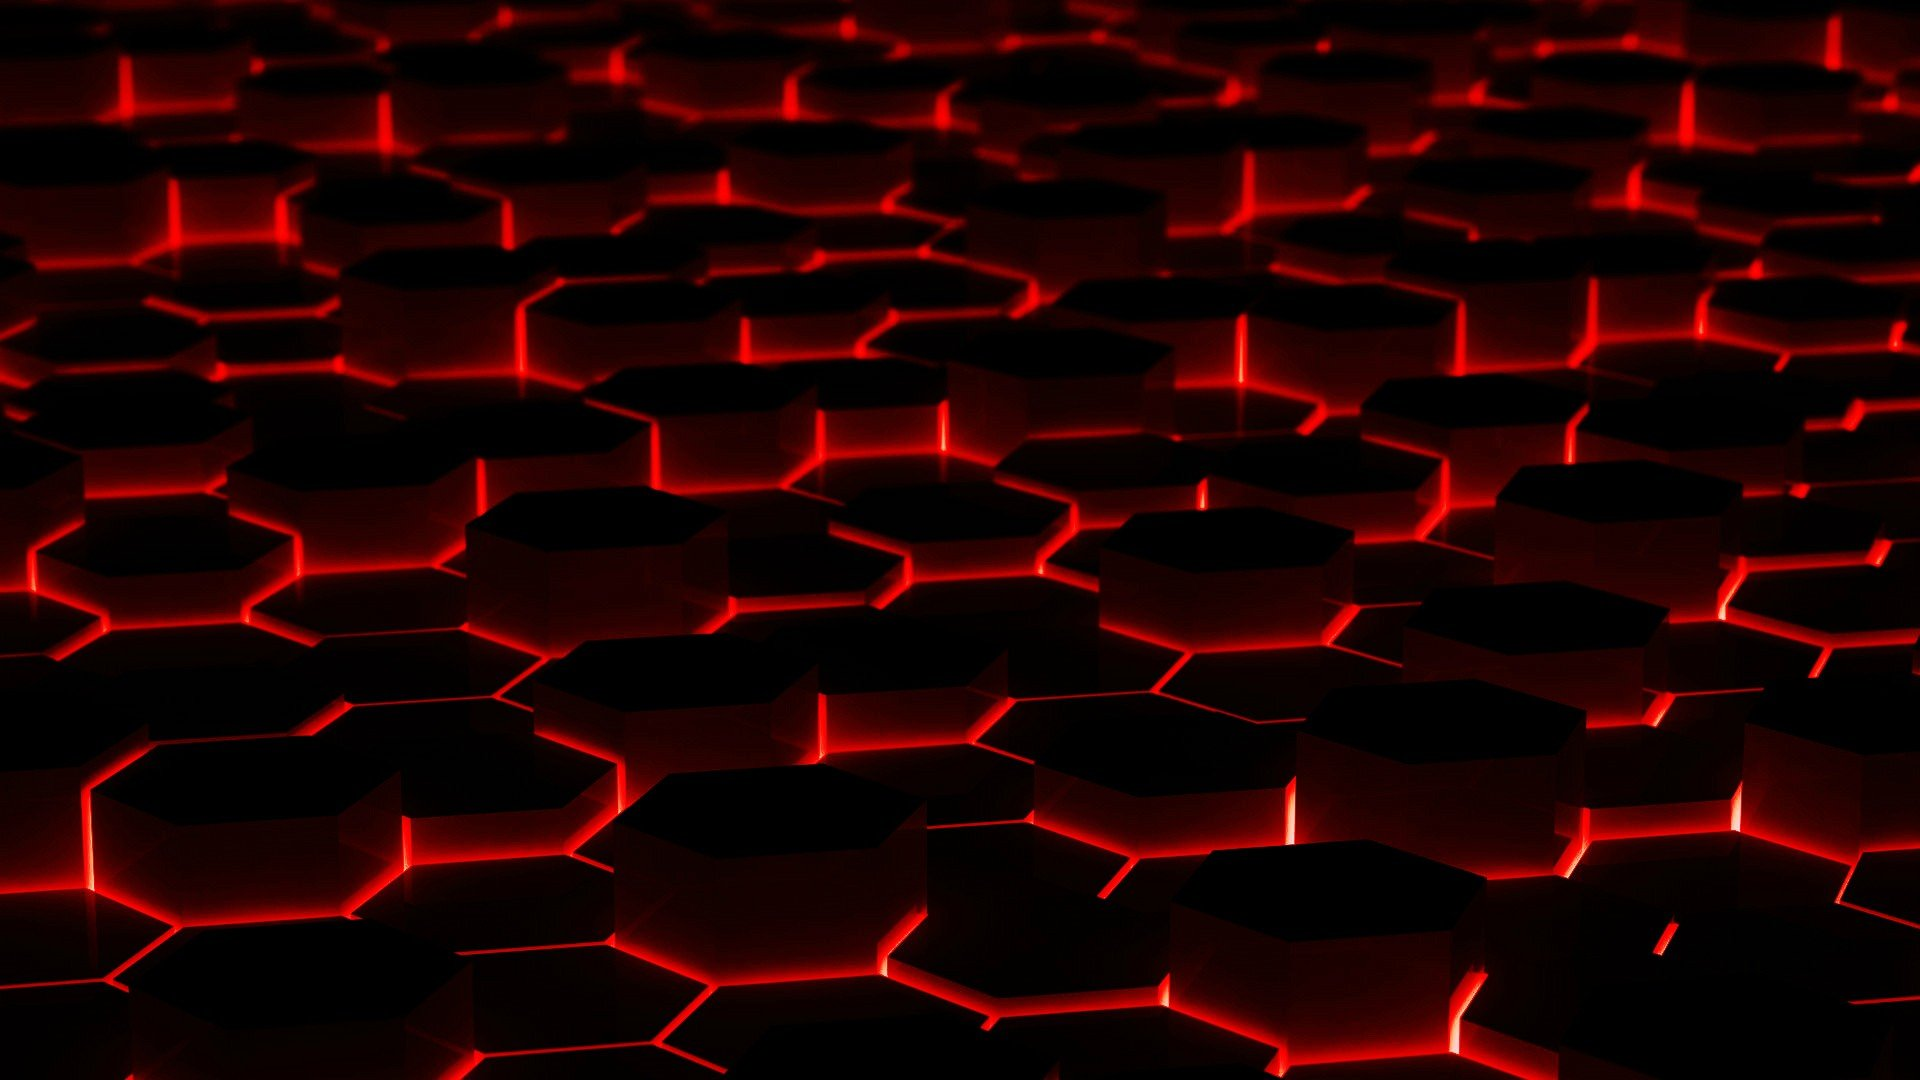 amd crimson wallpaper - wallpapersafari